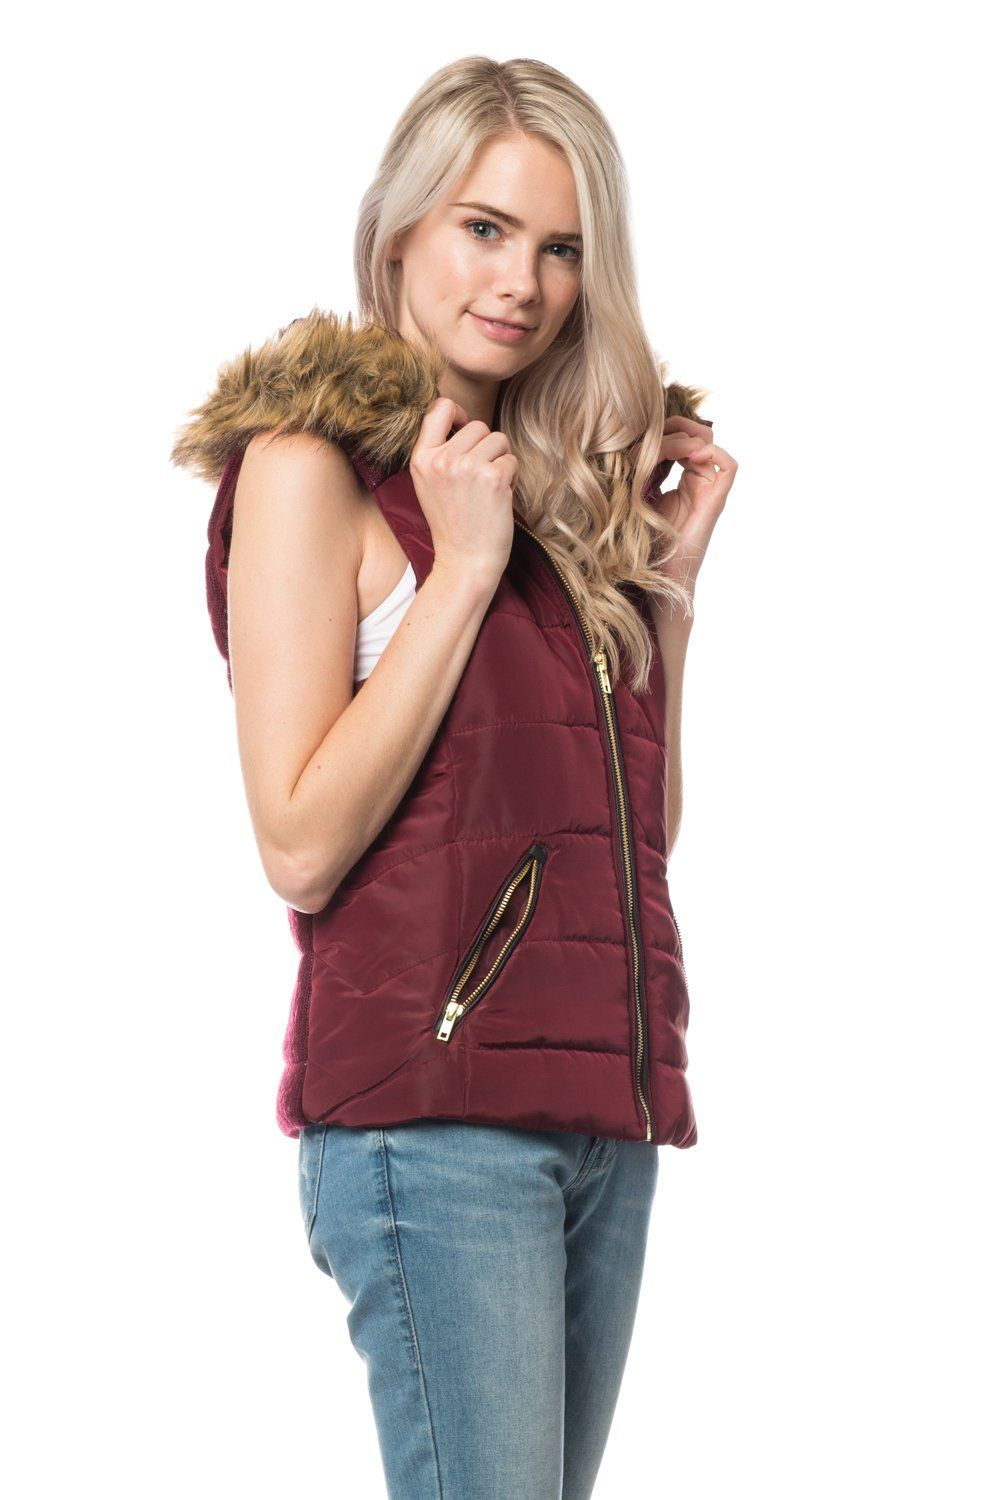 a54d5de5c17b6 Give your outfit a flare of the sports look with our lightweight sleeveless  military anorak vest